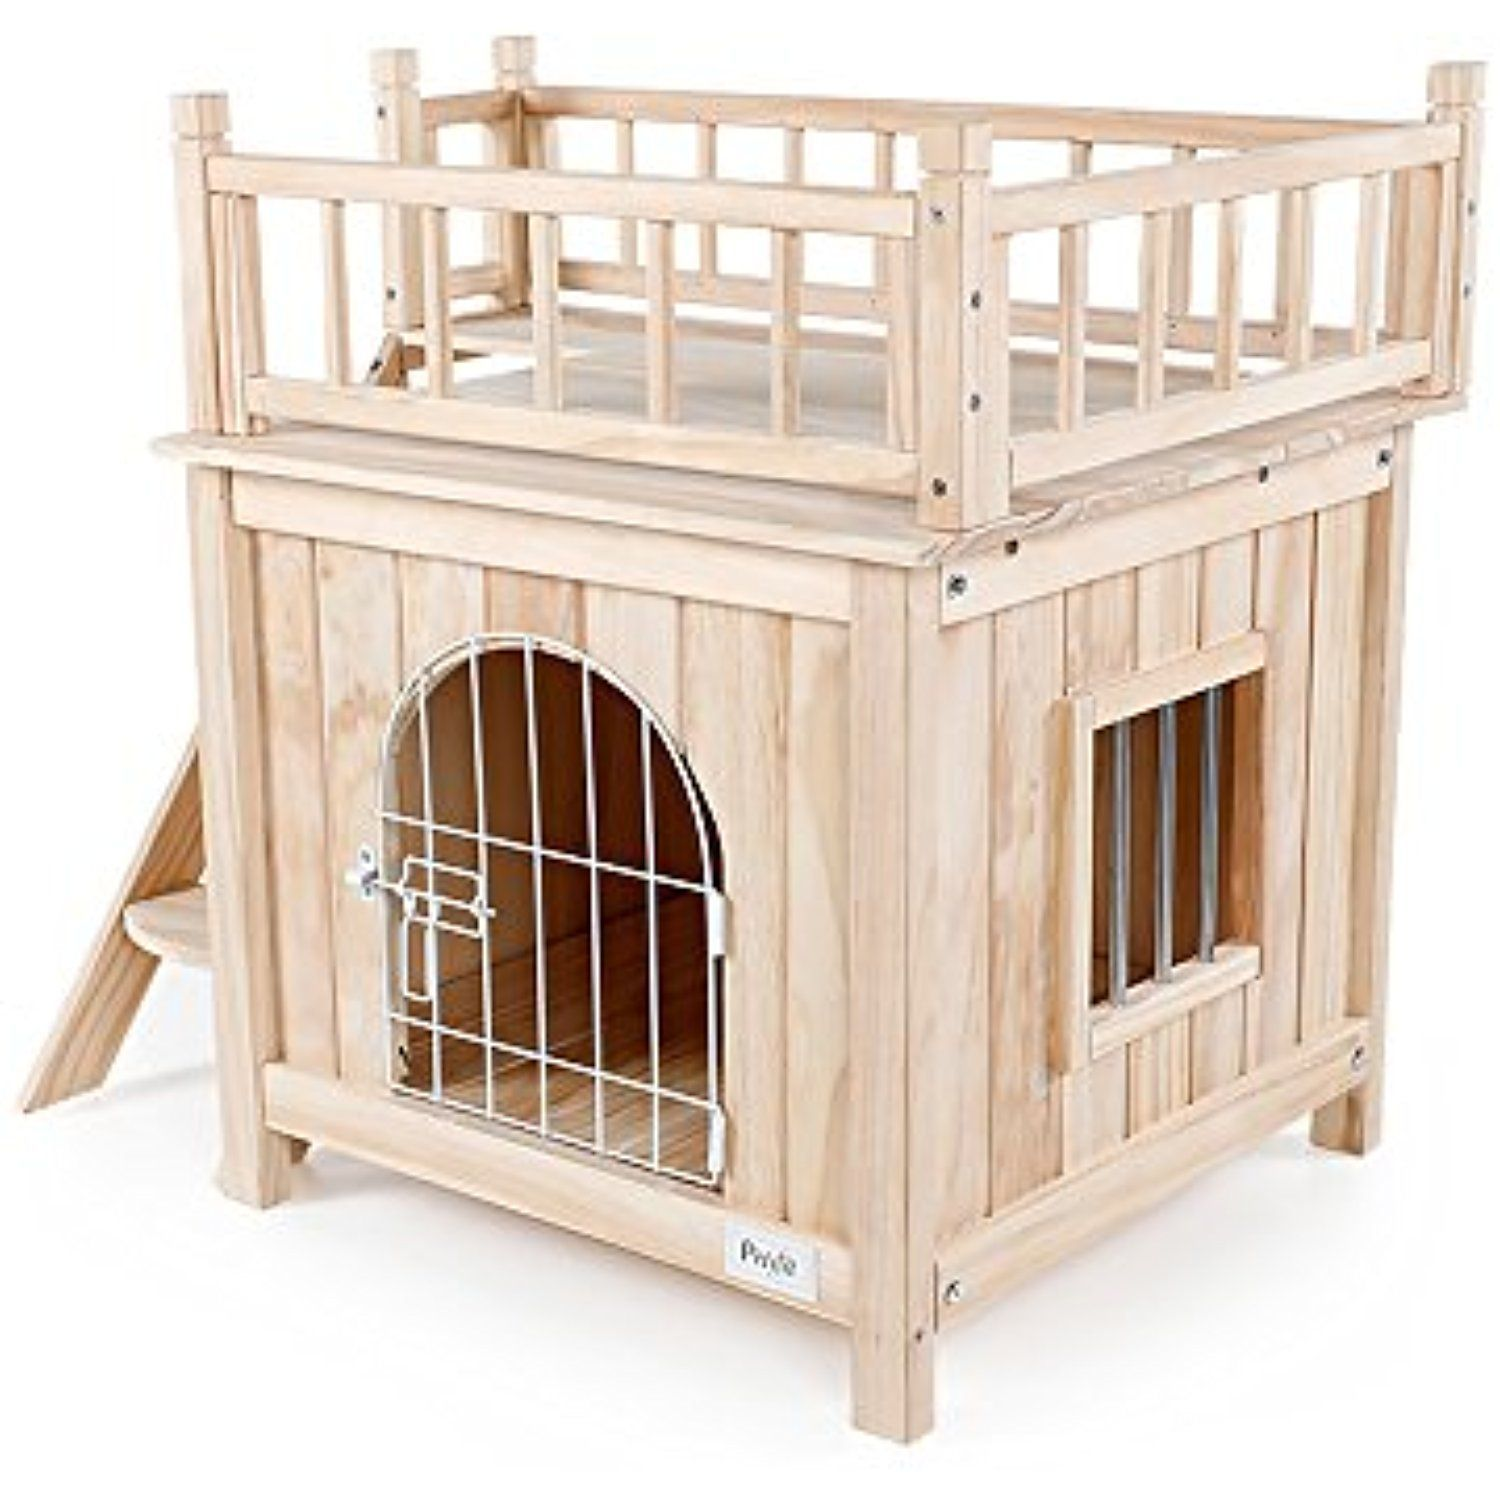 Petsfit Indoor Wooden Cat Pet Dog House With Stairs And Wire Door 28 Lx21 Wx25 H For More Information Visit Image Li Cat Houses Indoor Wooden Cat Pets Cats